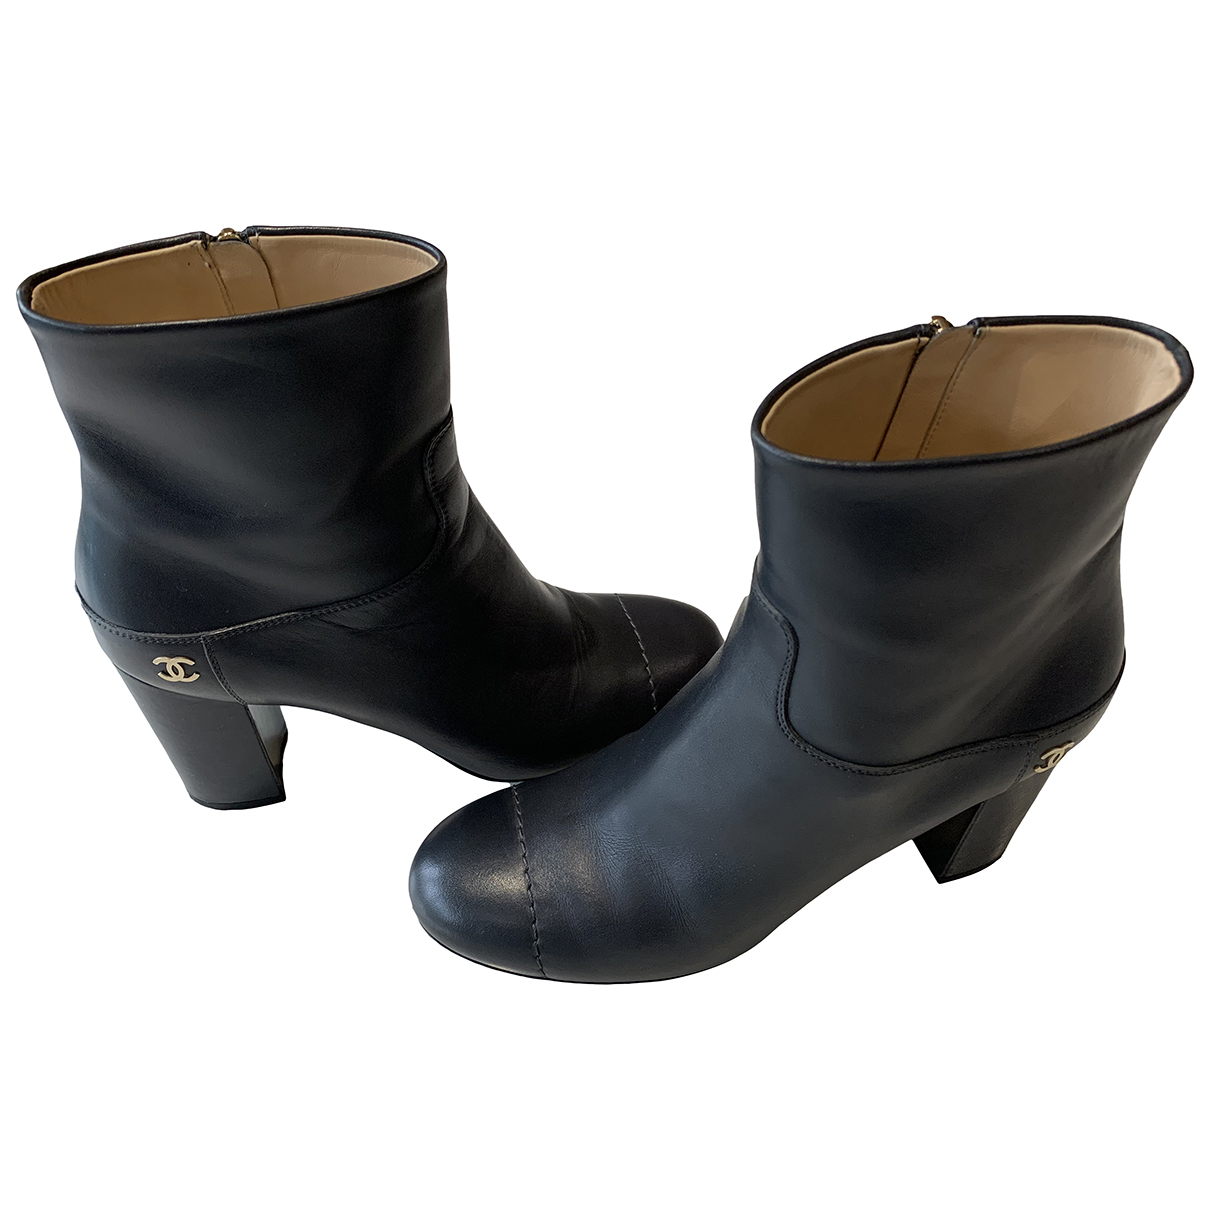 Chanel \N Grey Leather Boots for Women 39 EU